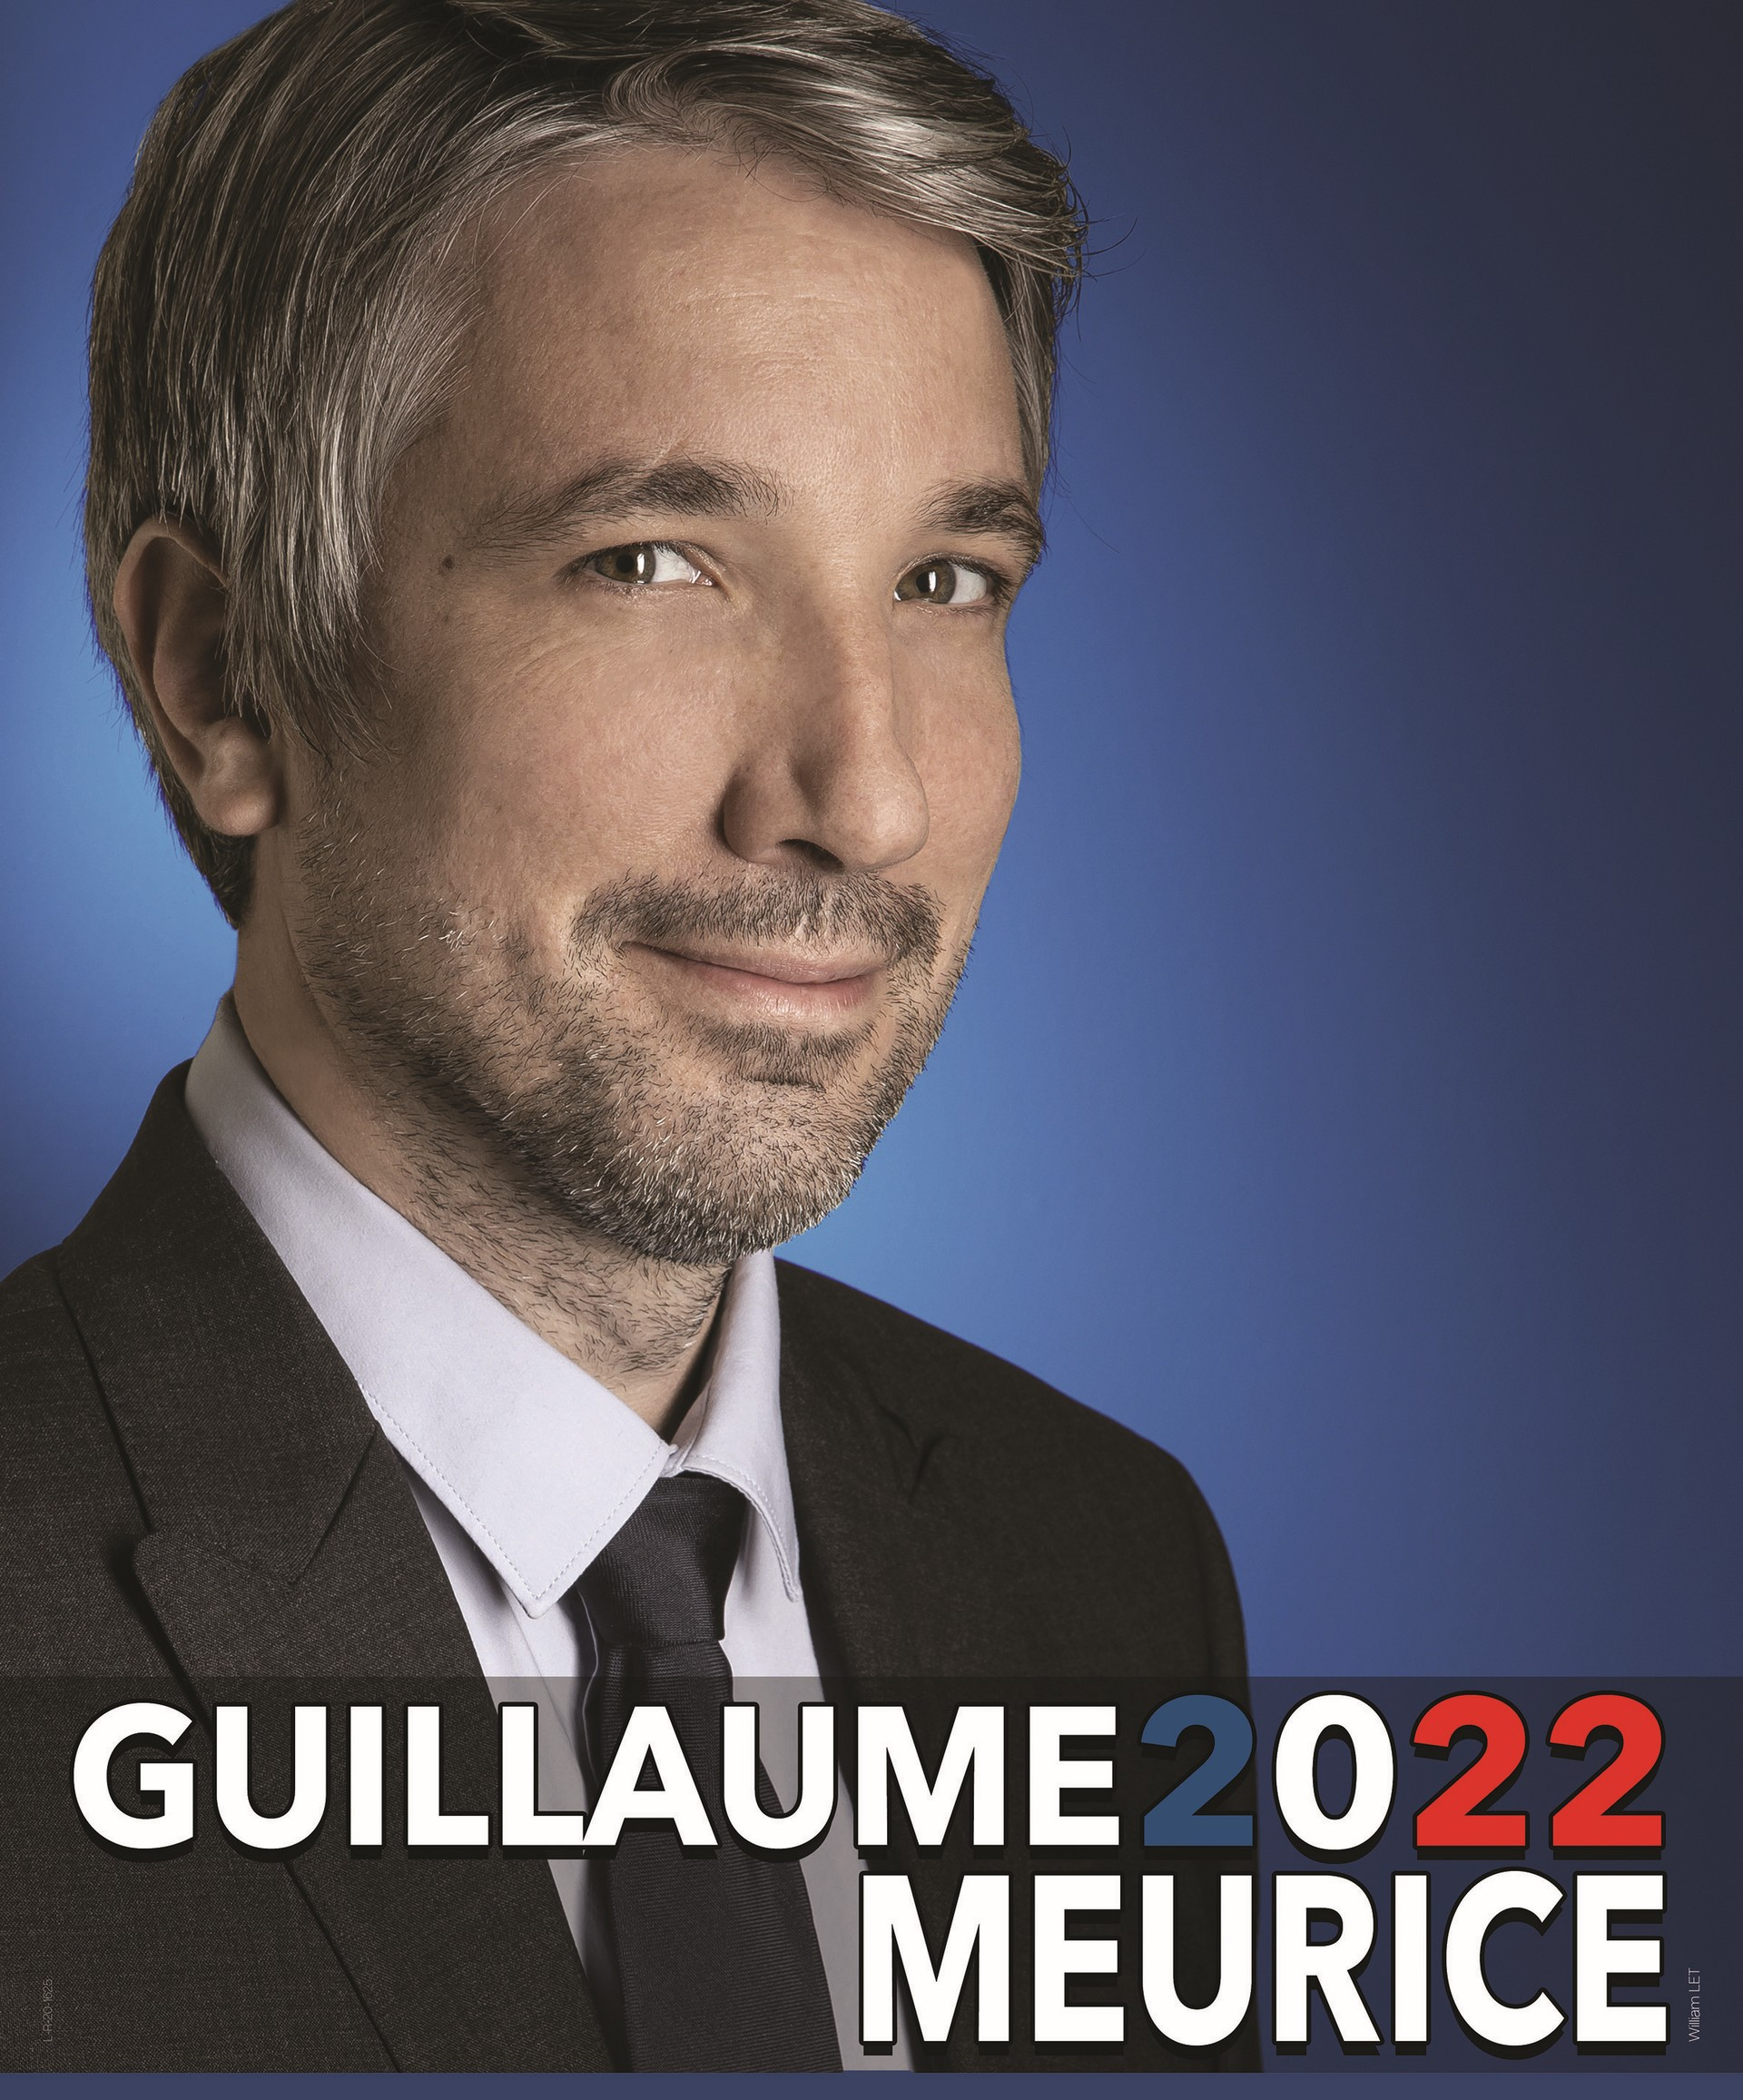 Spectacle : Guillaume Meurice 2022 - ORTHEZ